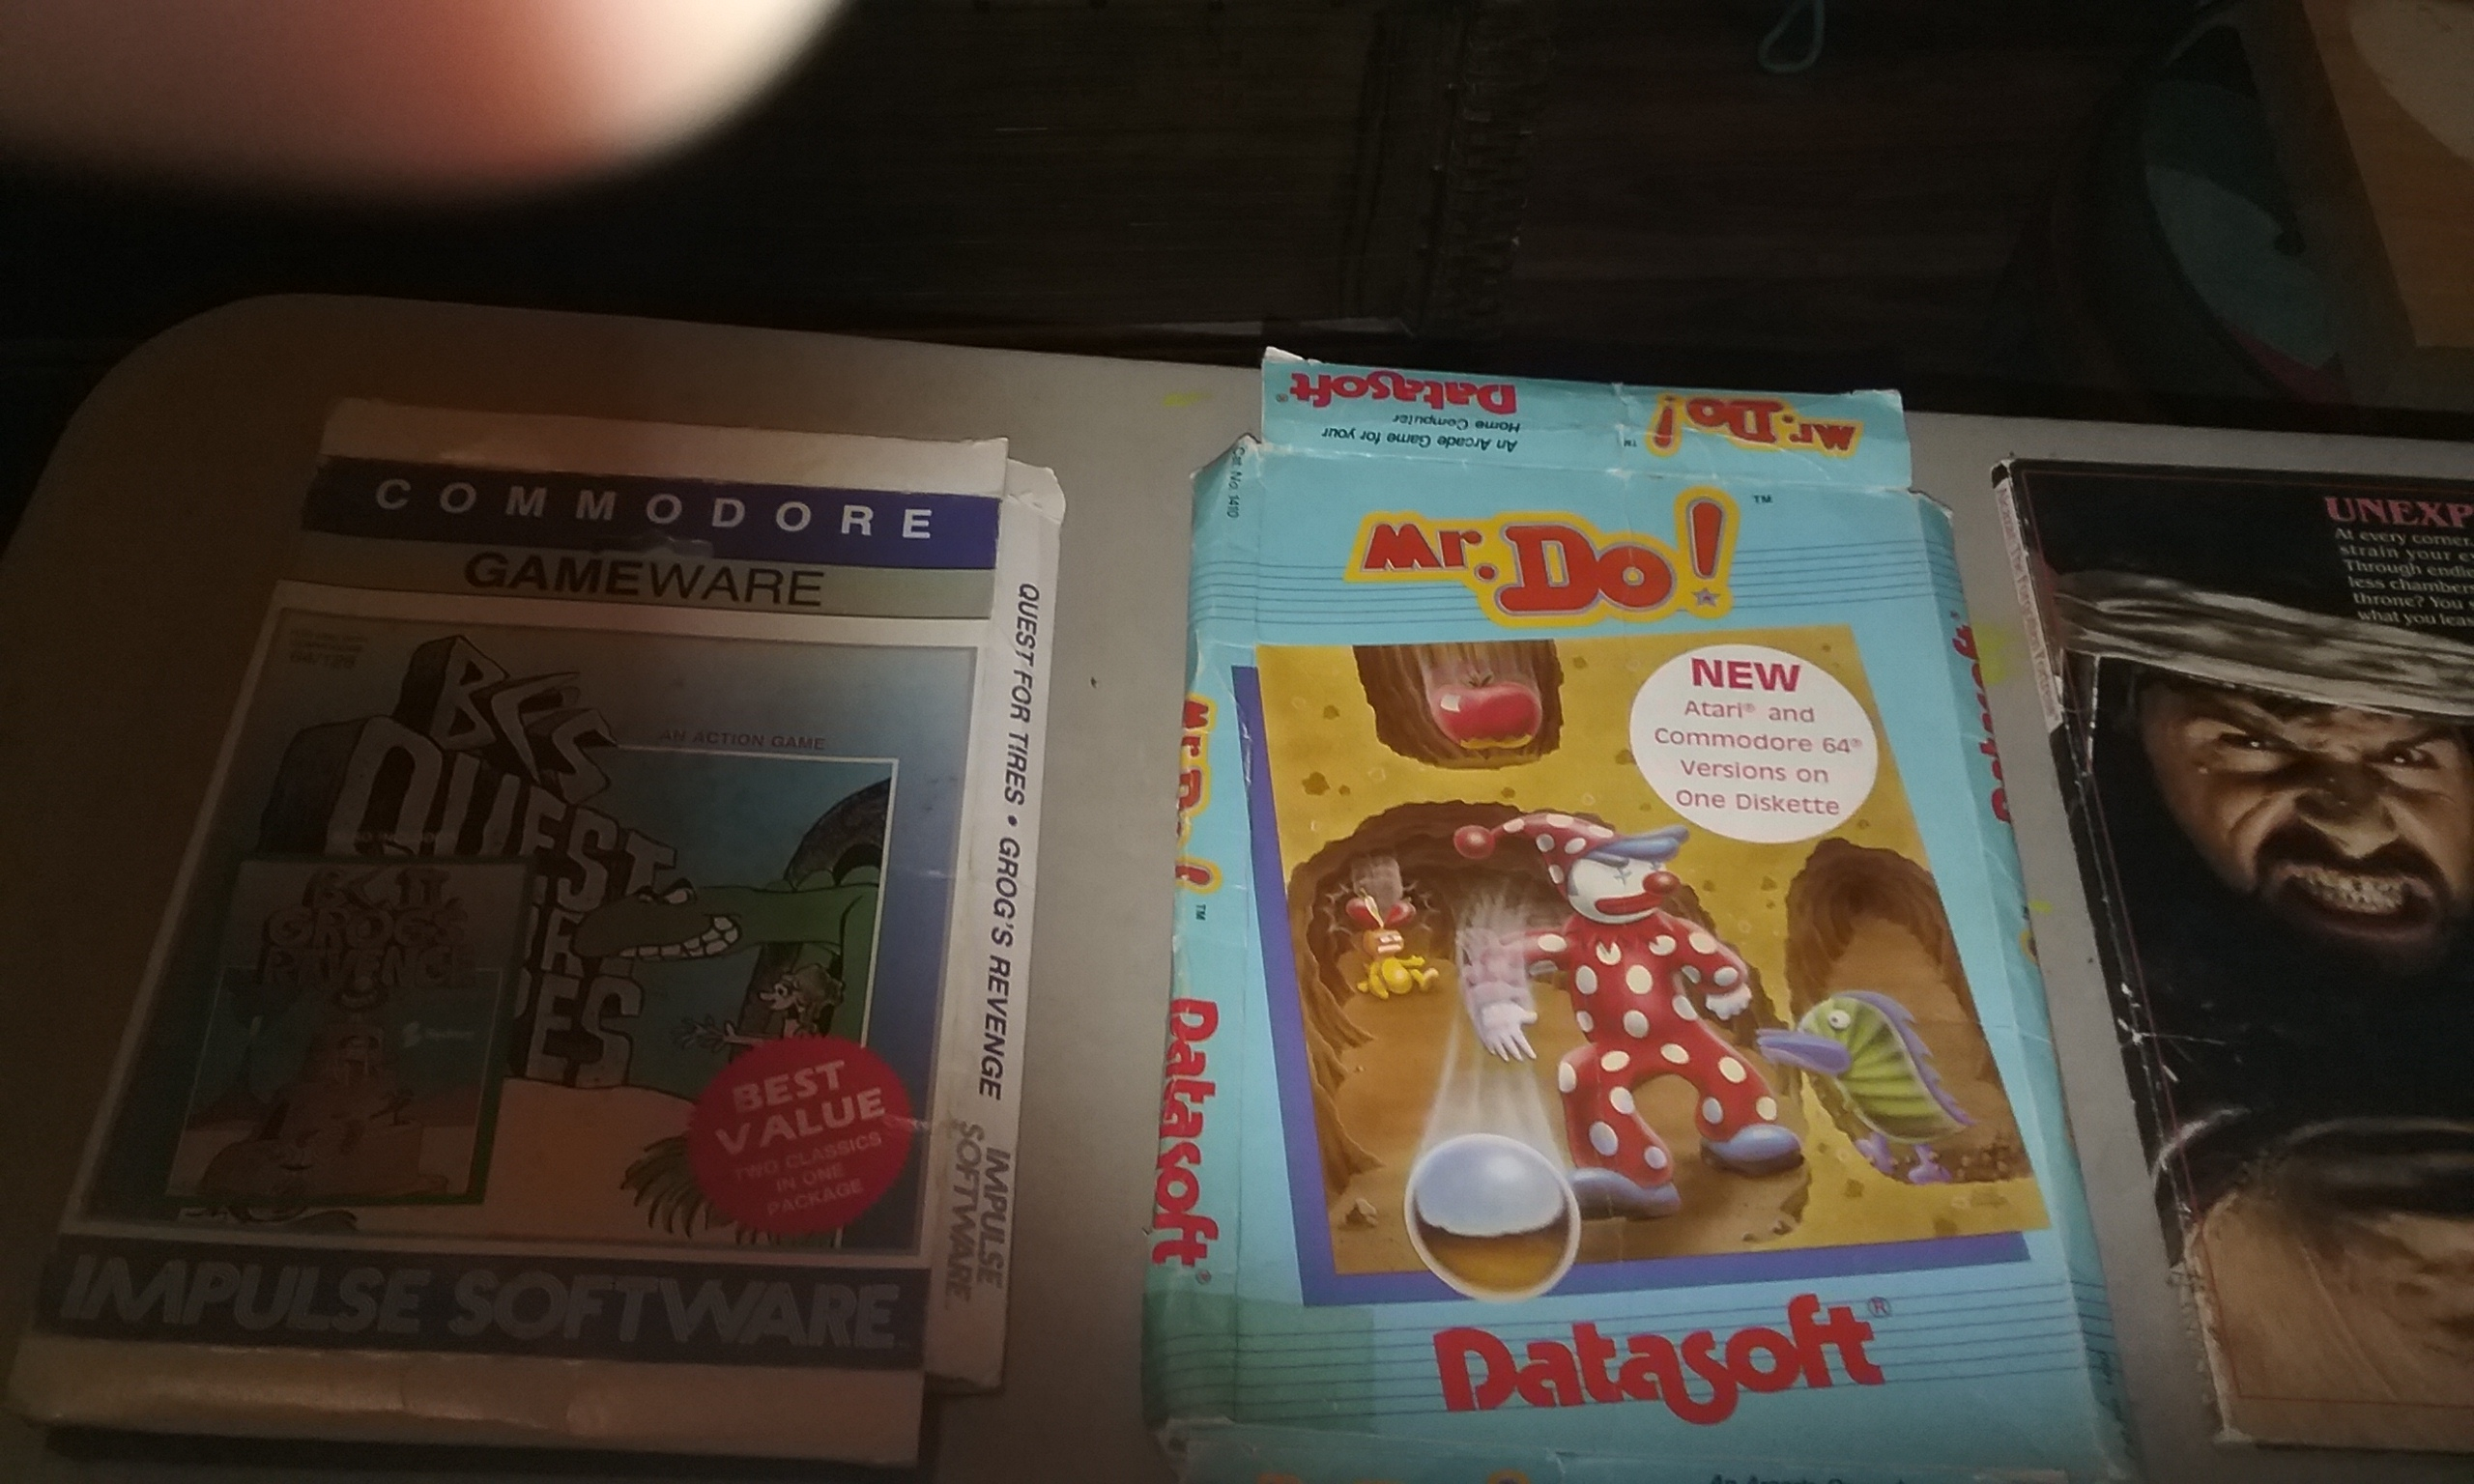 Commodore 64 games for sale - Buy, Sell, and Trade